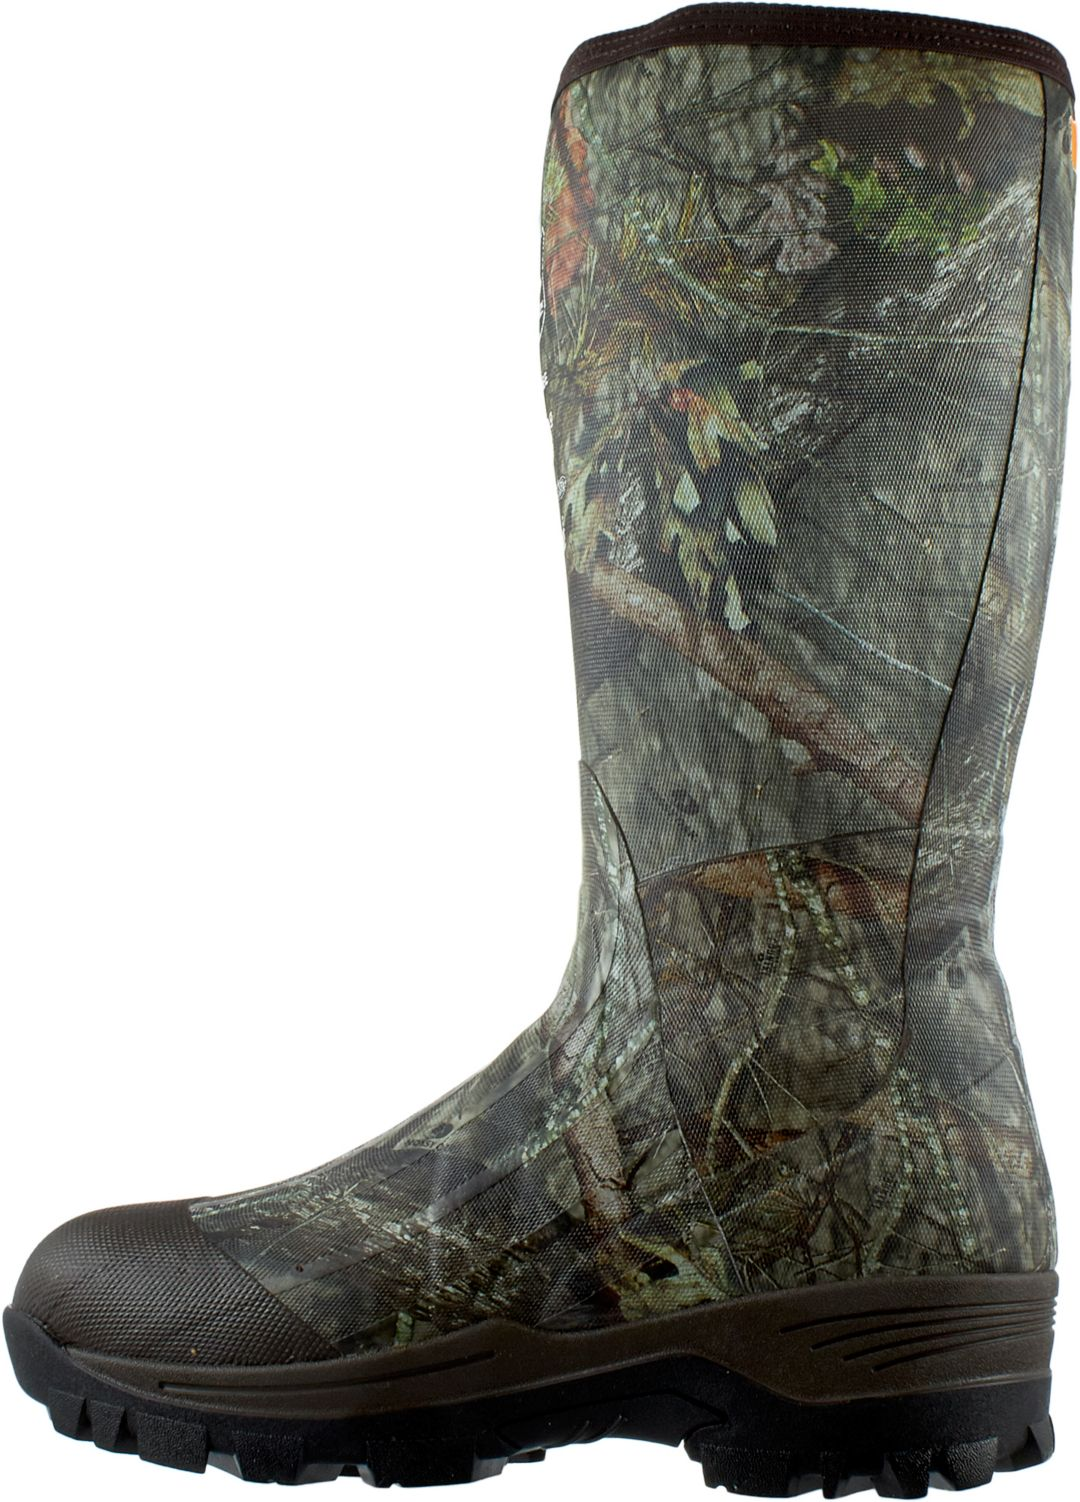 b880ab4b39613 Field & Stream Men's Swamptracker Mossy Oak 400g Rubber Hunting ...